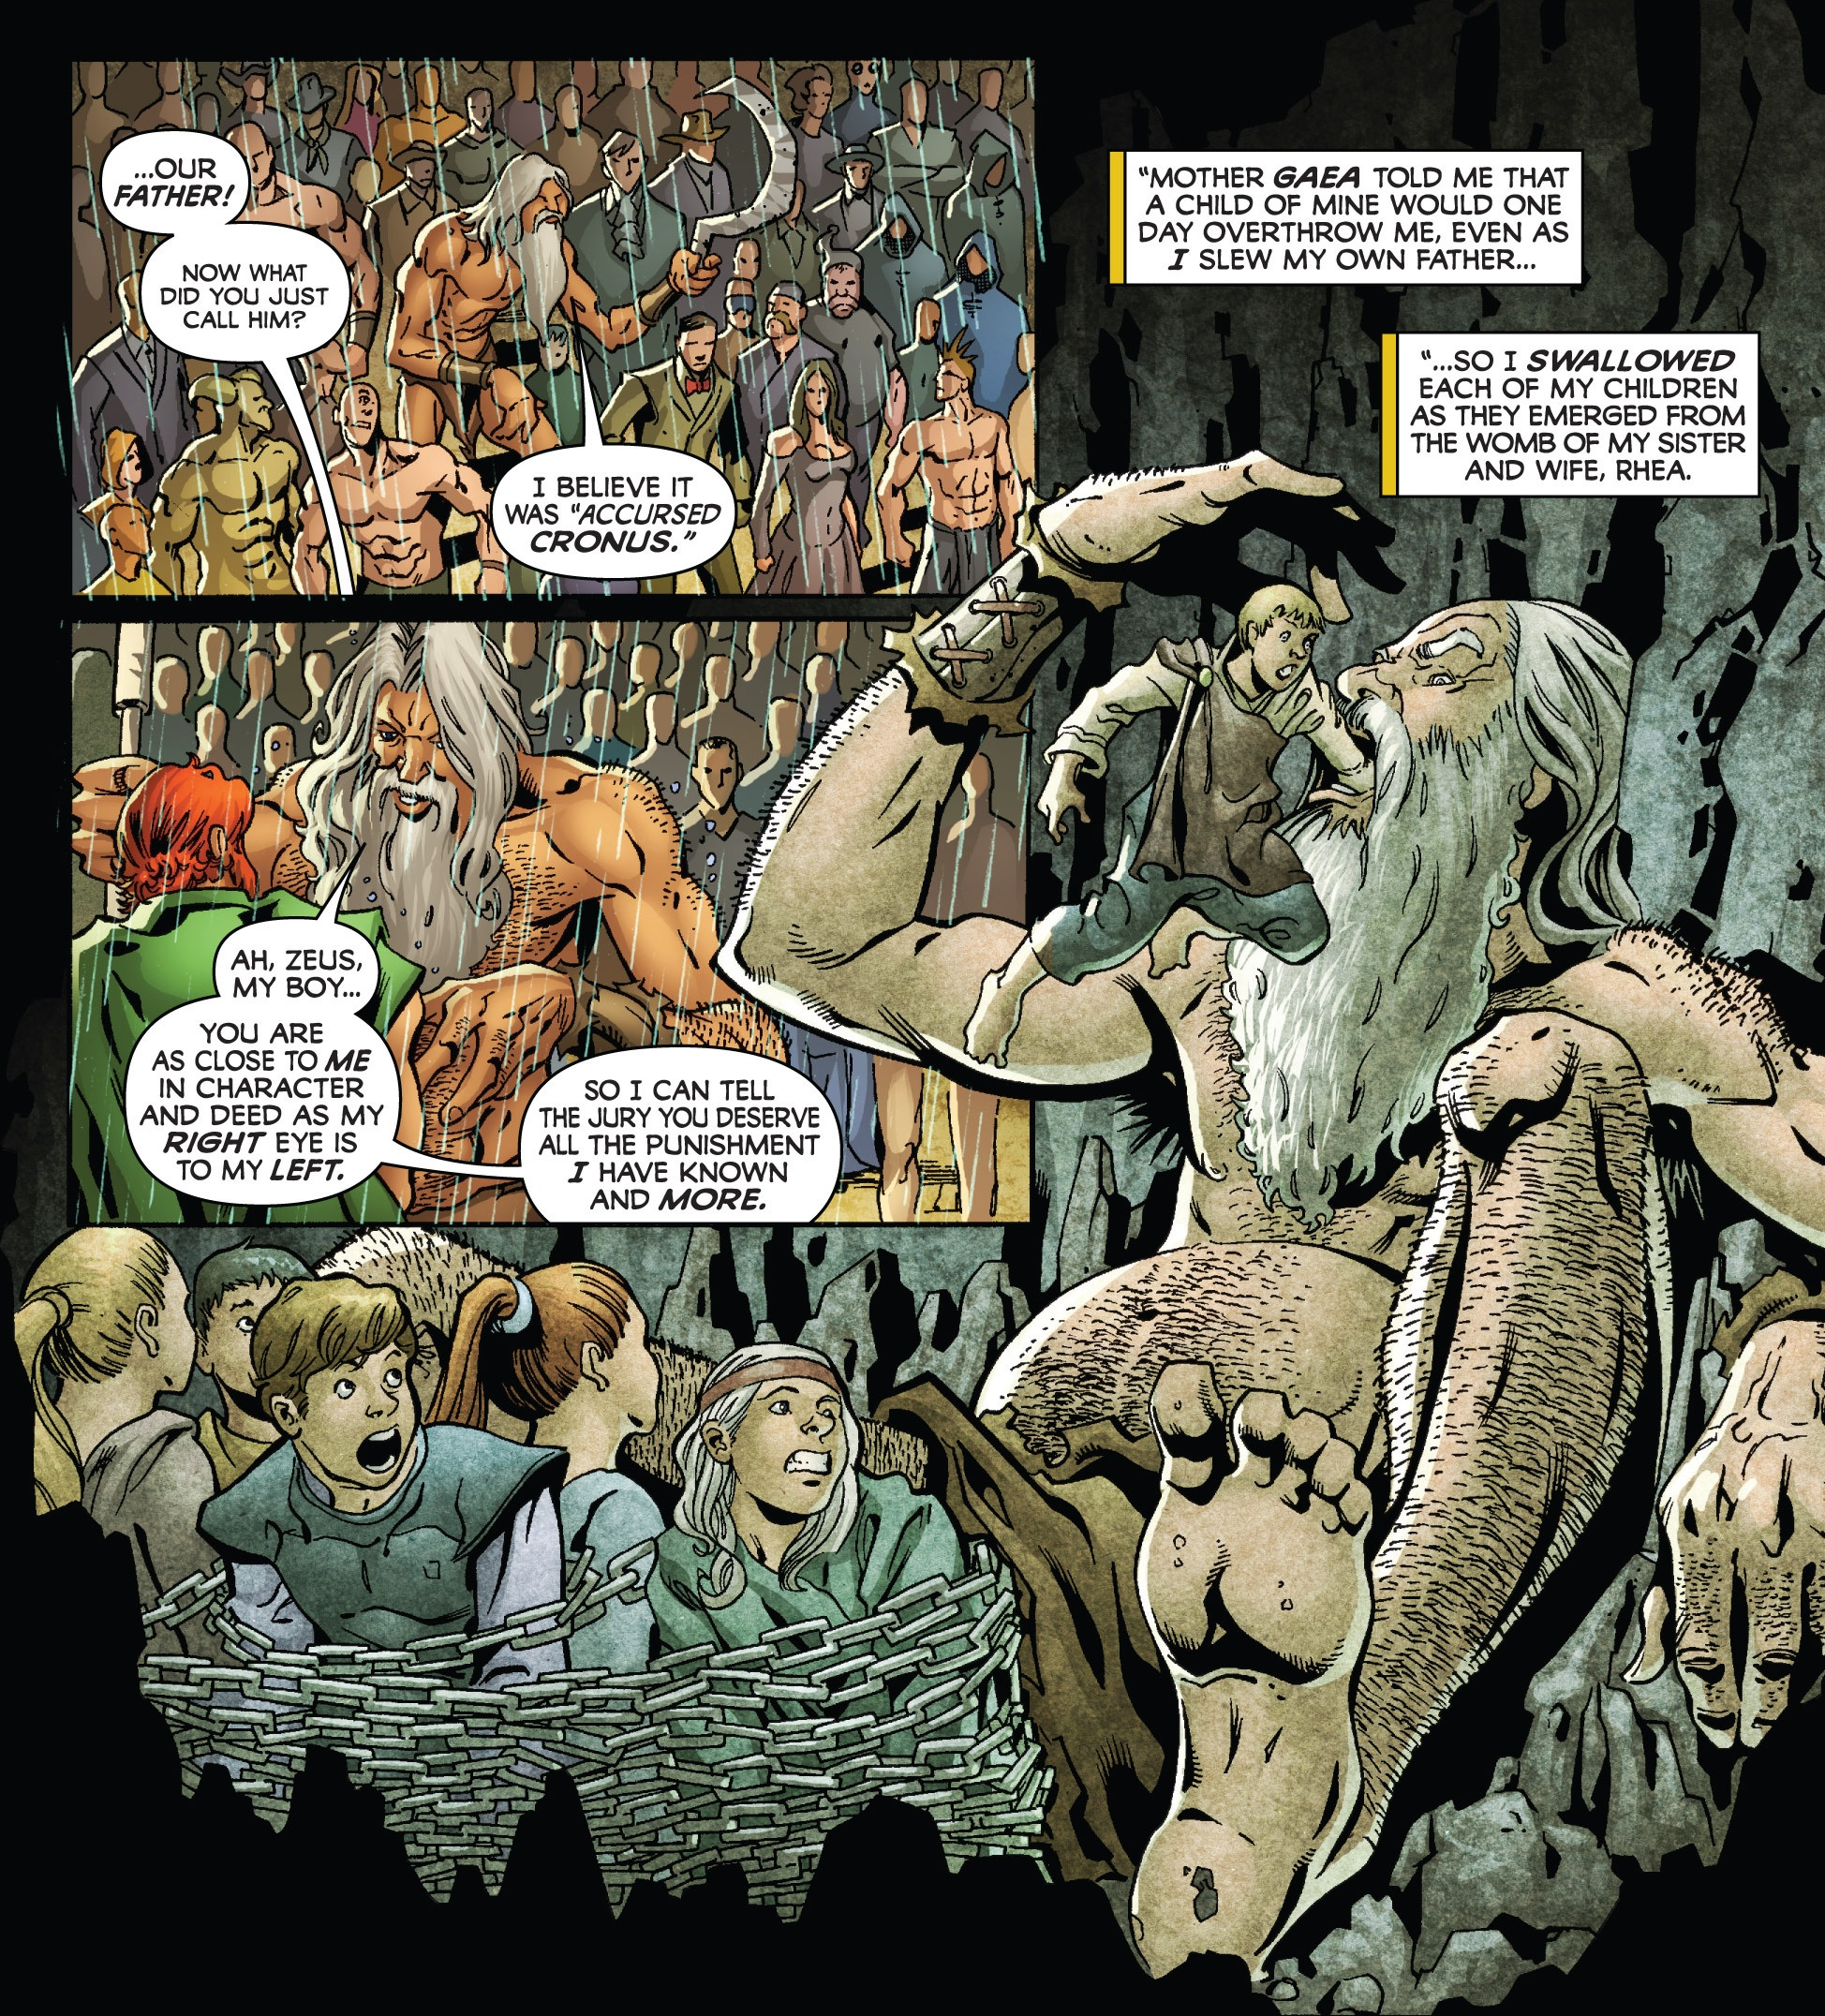 image cronus earth 616 from incredible hercules vol 1 130 001